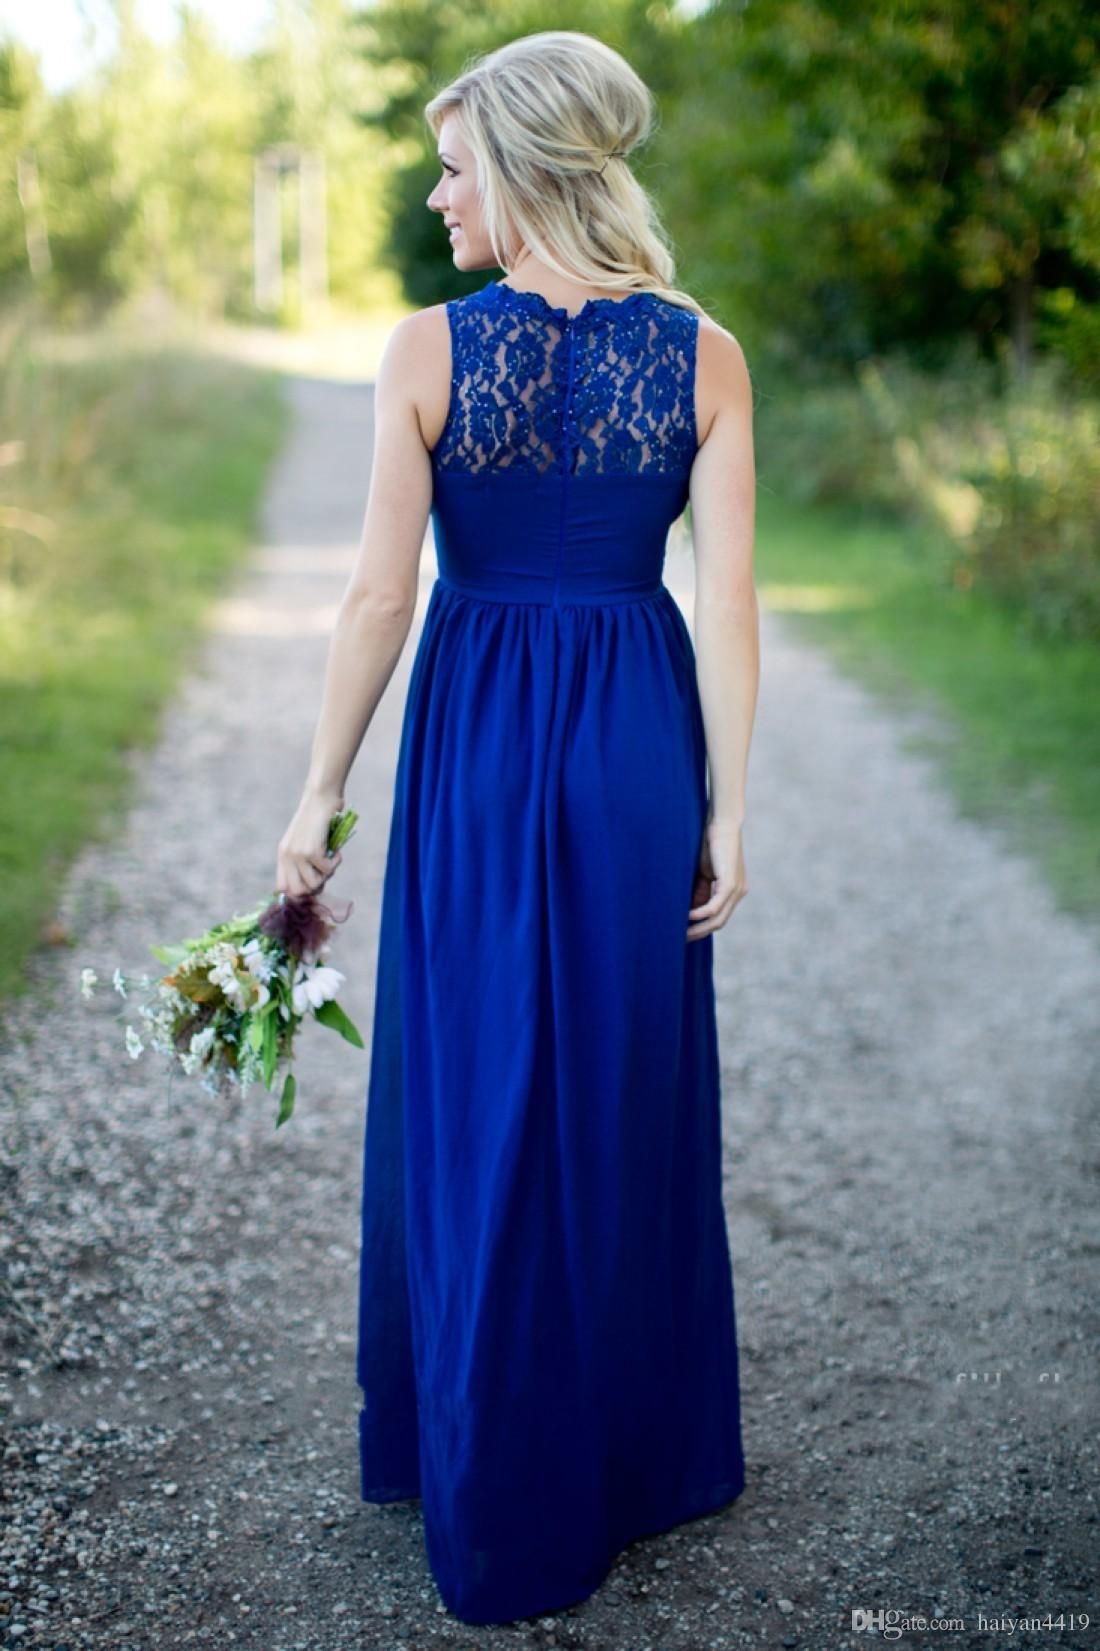 Cheap country bridesmaid dresses 2017 long for wedding royal blue cheap country bridesmaid dresses 2017 long for wedding royal blue chiffon lace illusion neck sheer with beads plus size party maid honor under 100 as low as ombrellifo Choice Image